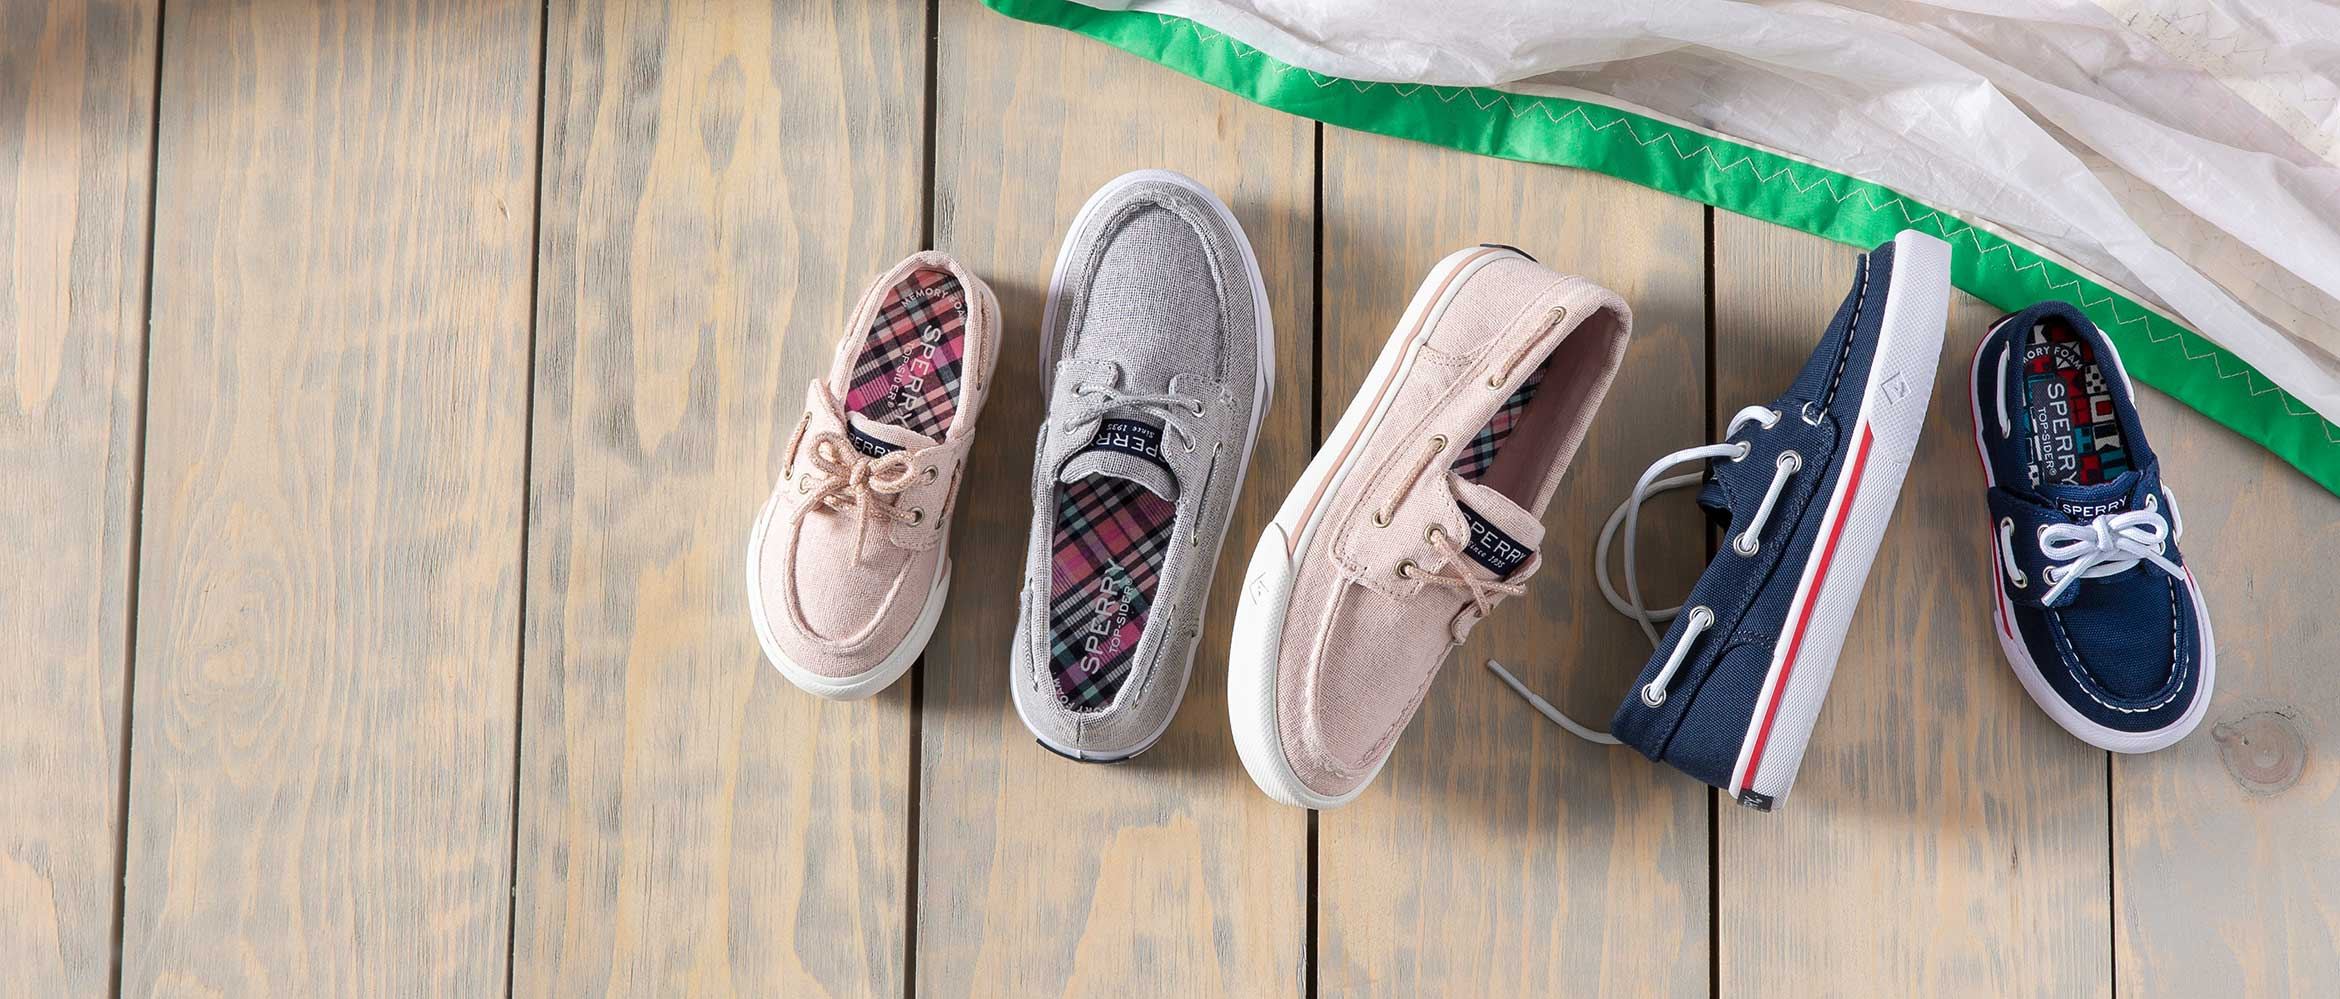 Sperry slip-on shoes of various sizes on a wood floor.